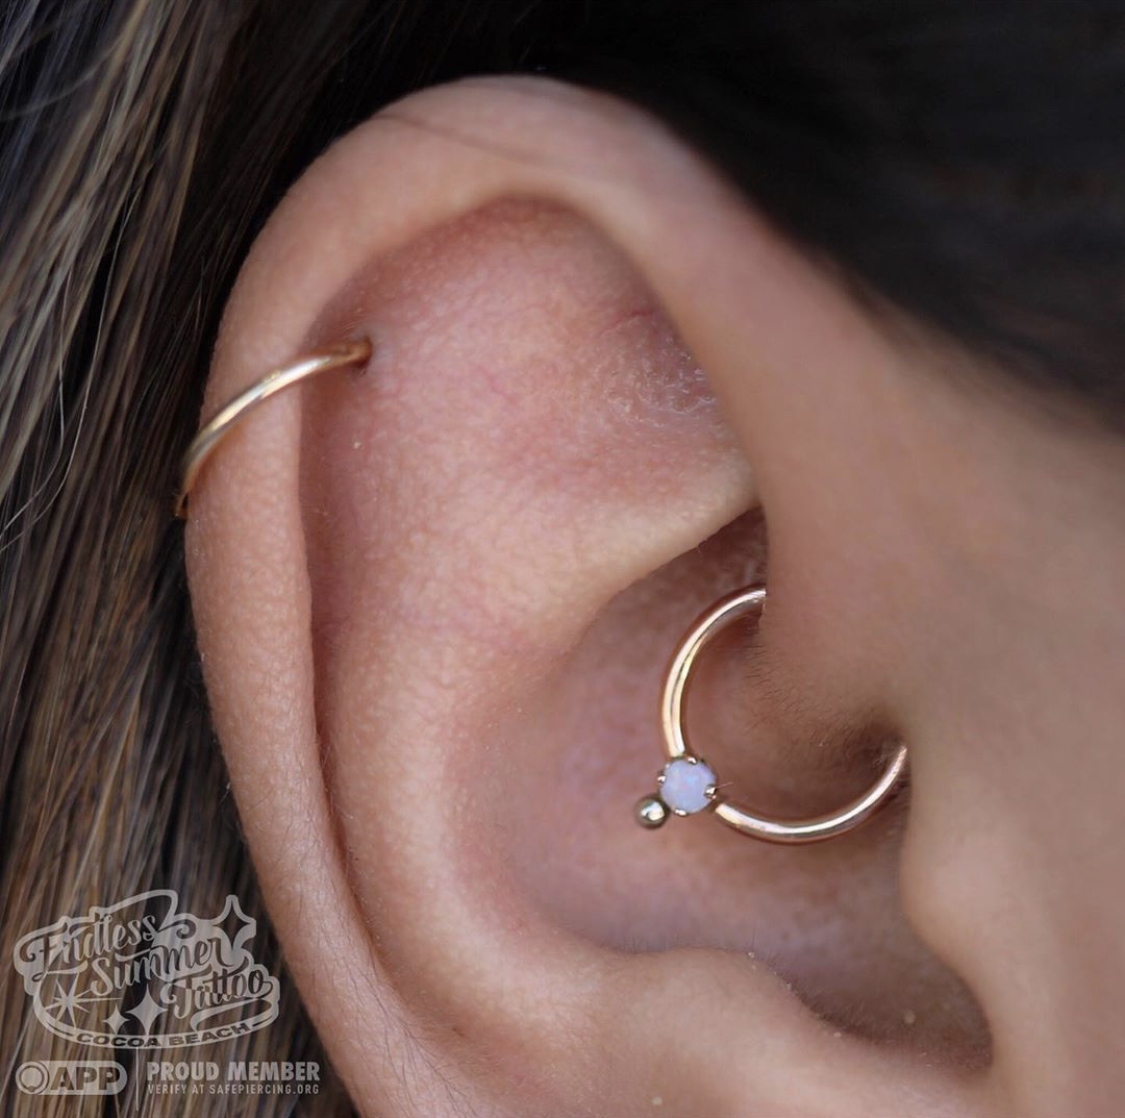 With and Helix Piercing